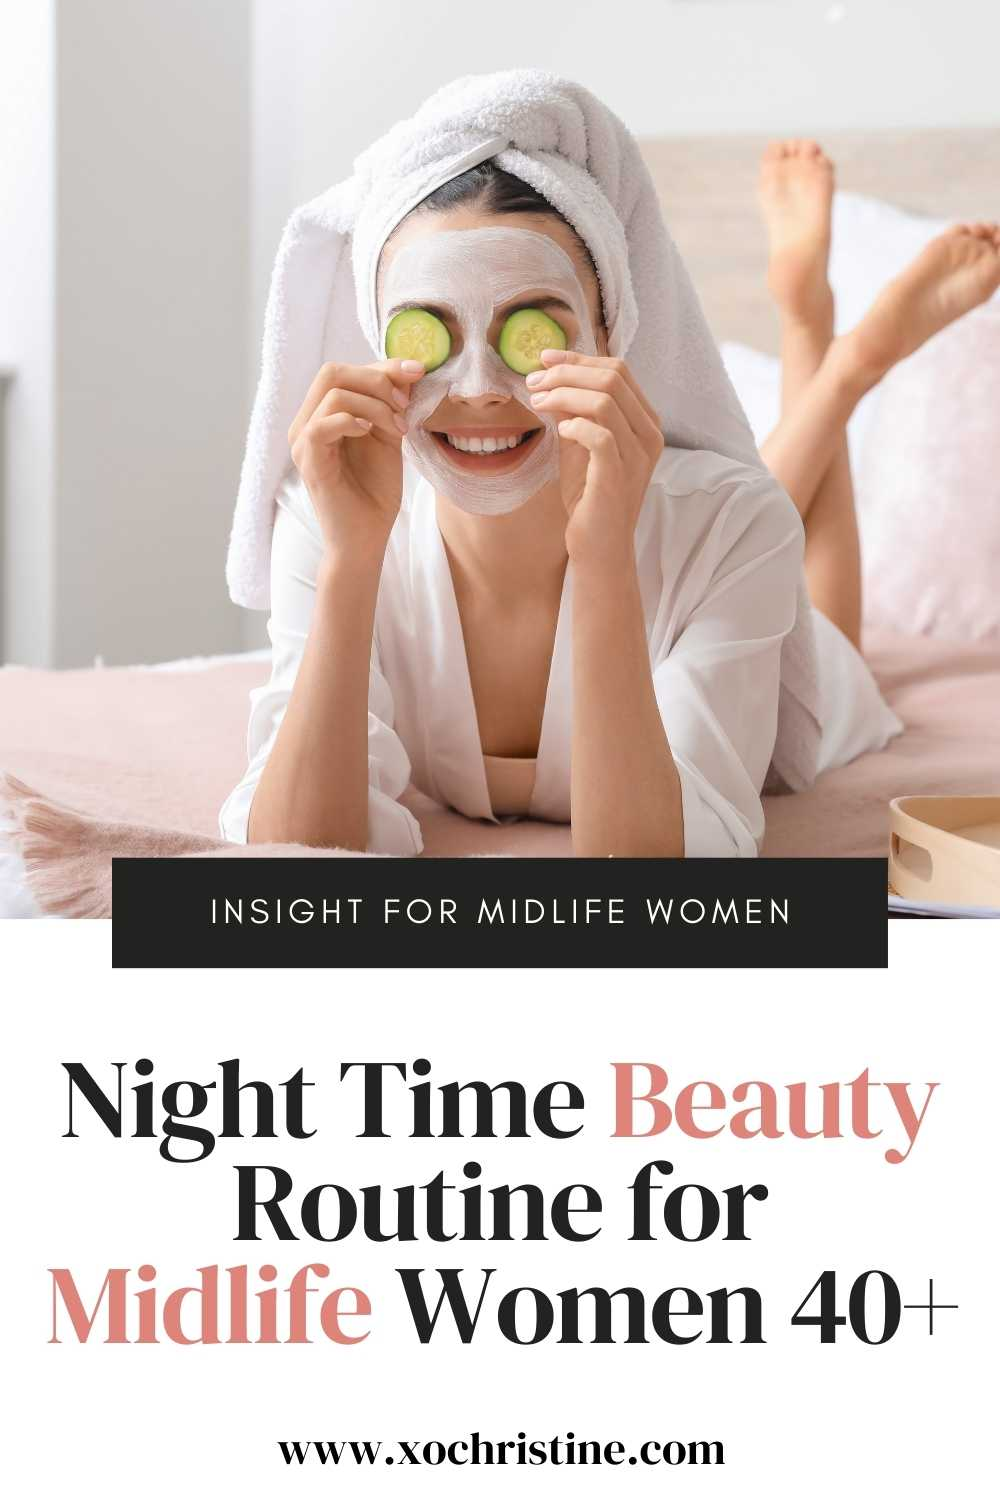 Nighttime beauty routine for women over 40+